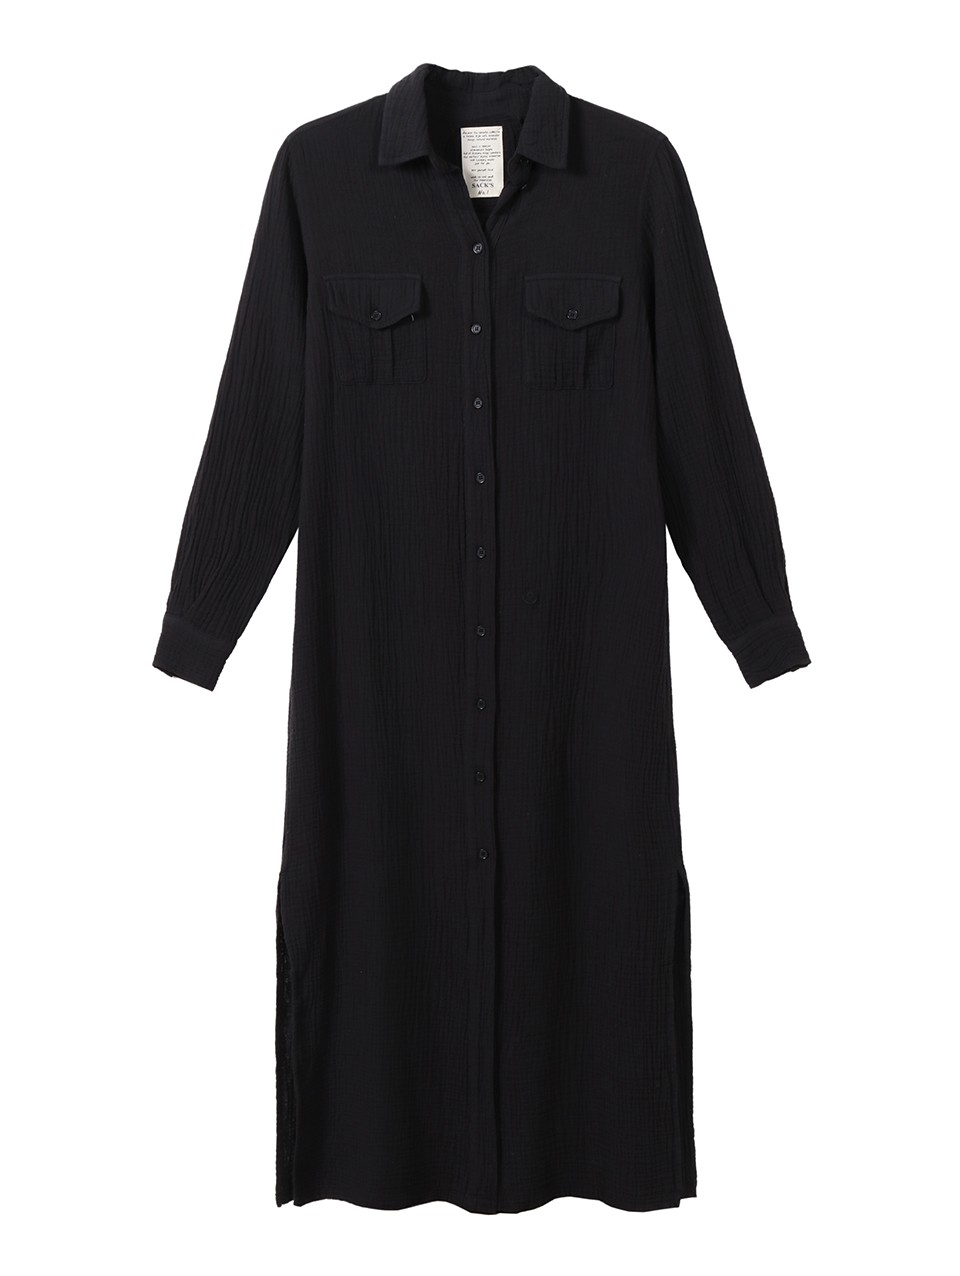 Sarah Wrinkled Shirt Dress